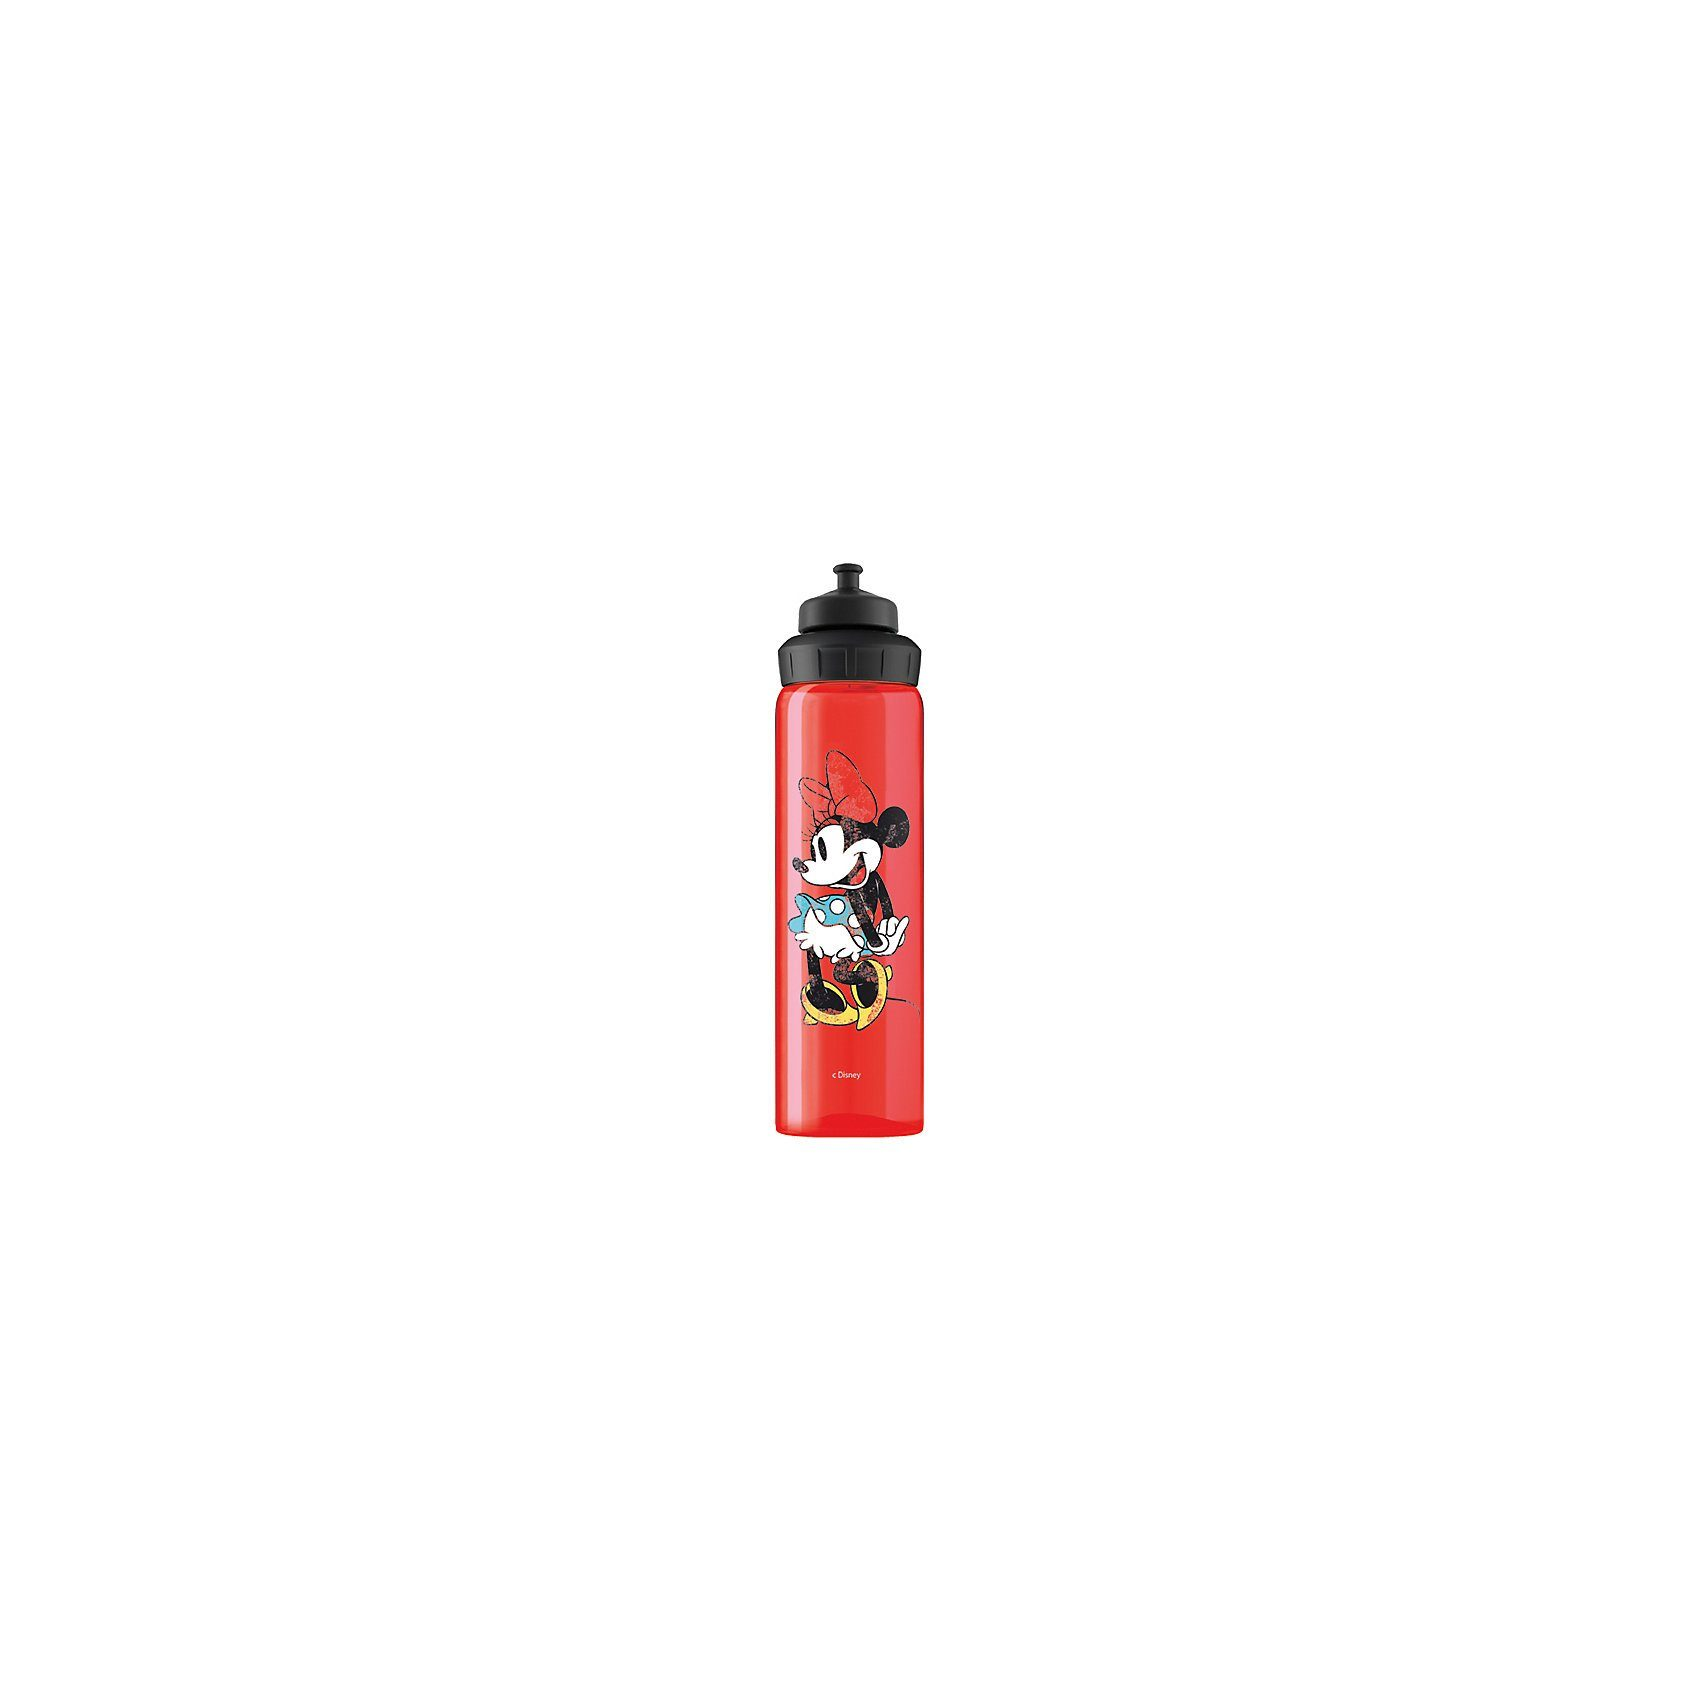 SIGG Trinkflasche VIVA 3-Stage Minnie Mouse, 750 ml